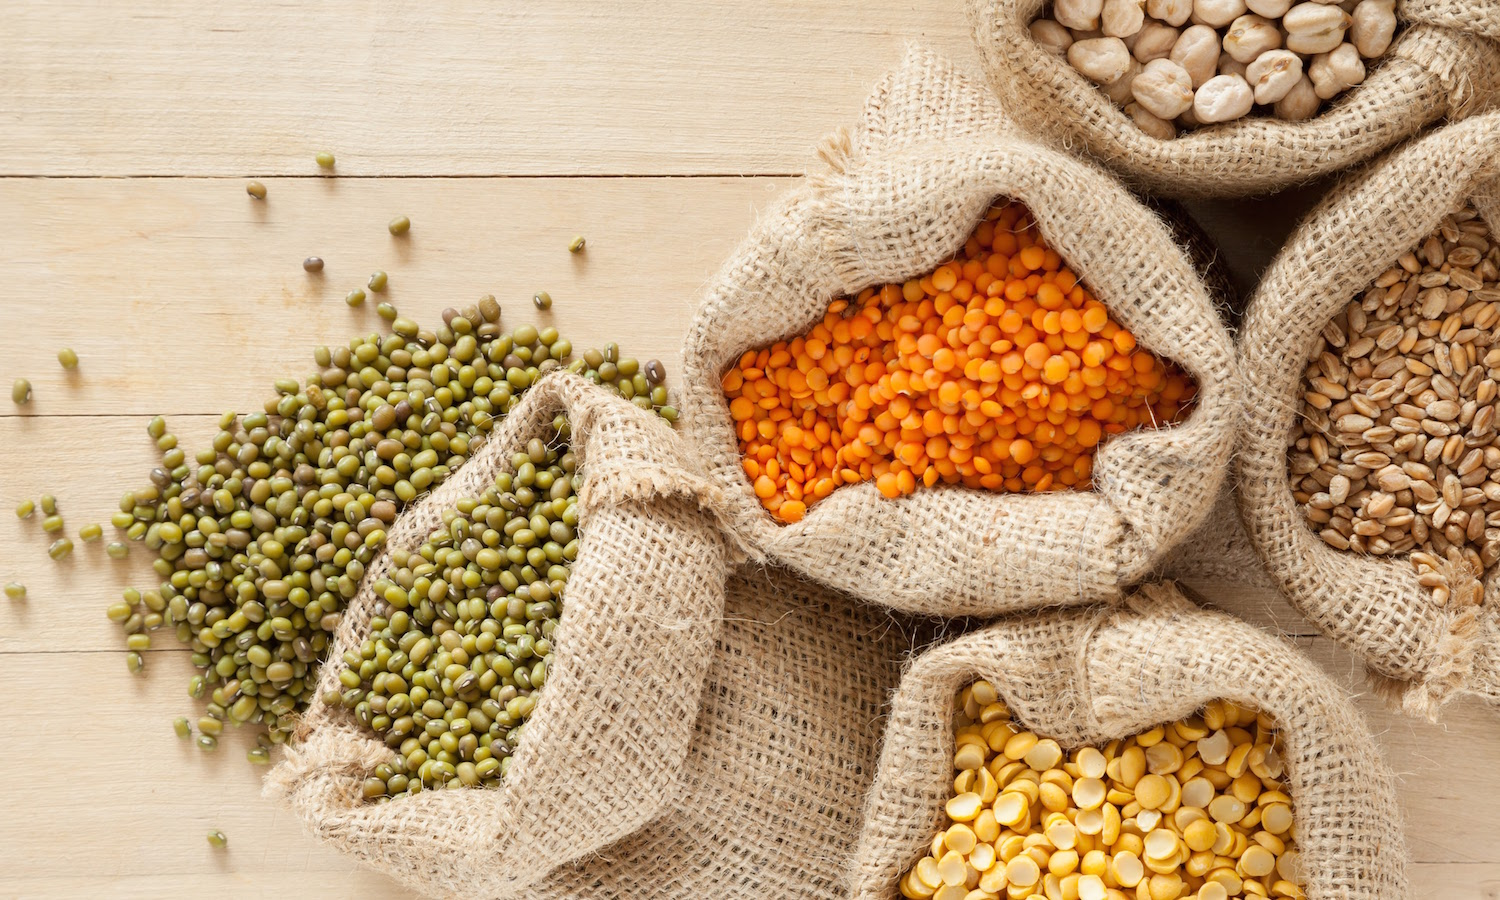 February 10th is World Pulses Day! Check out our ten favorite articles about why pulses matter.